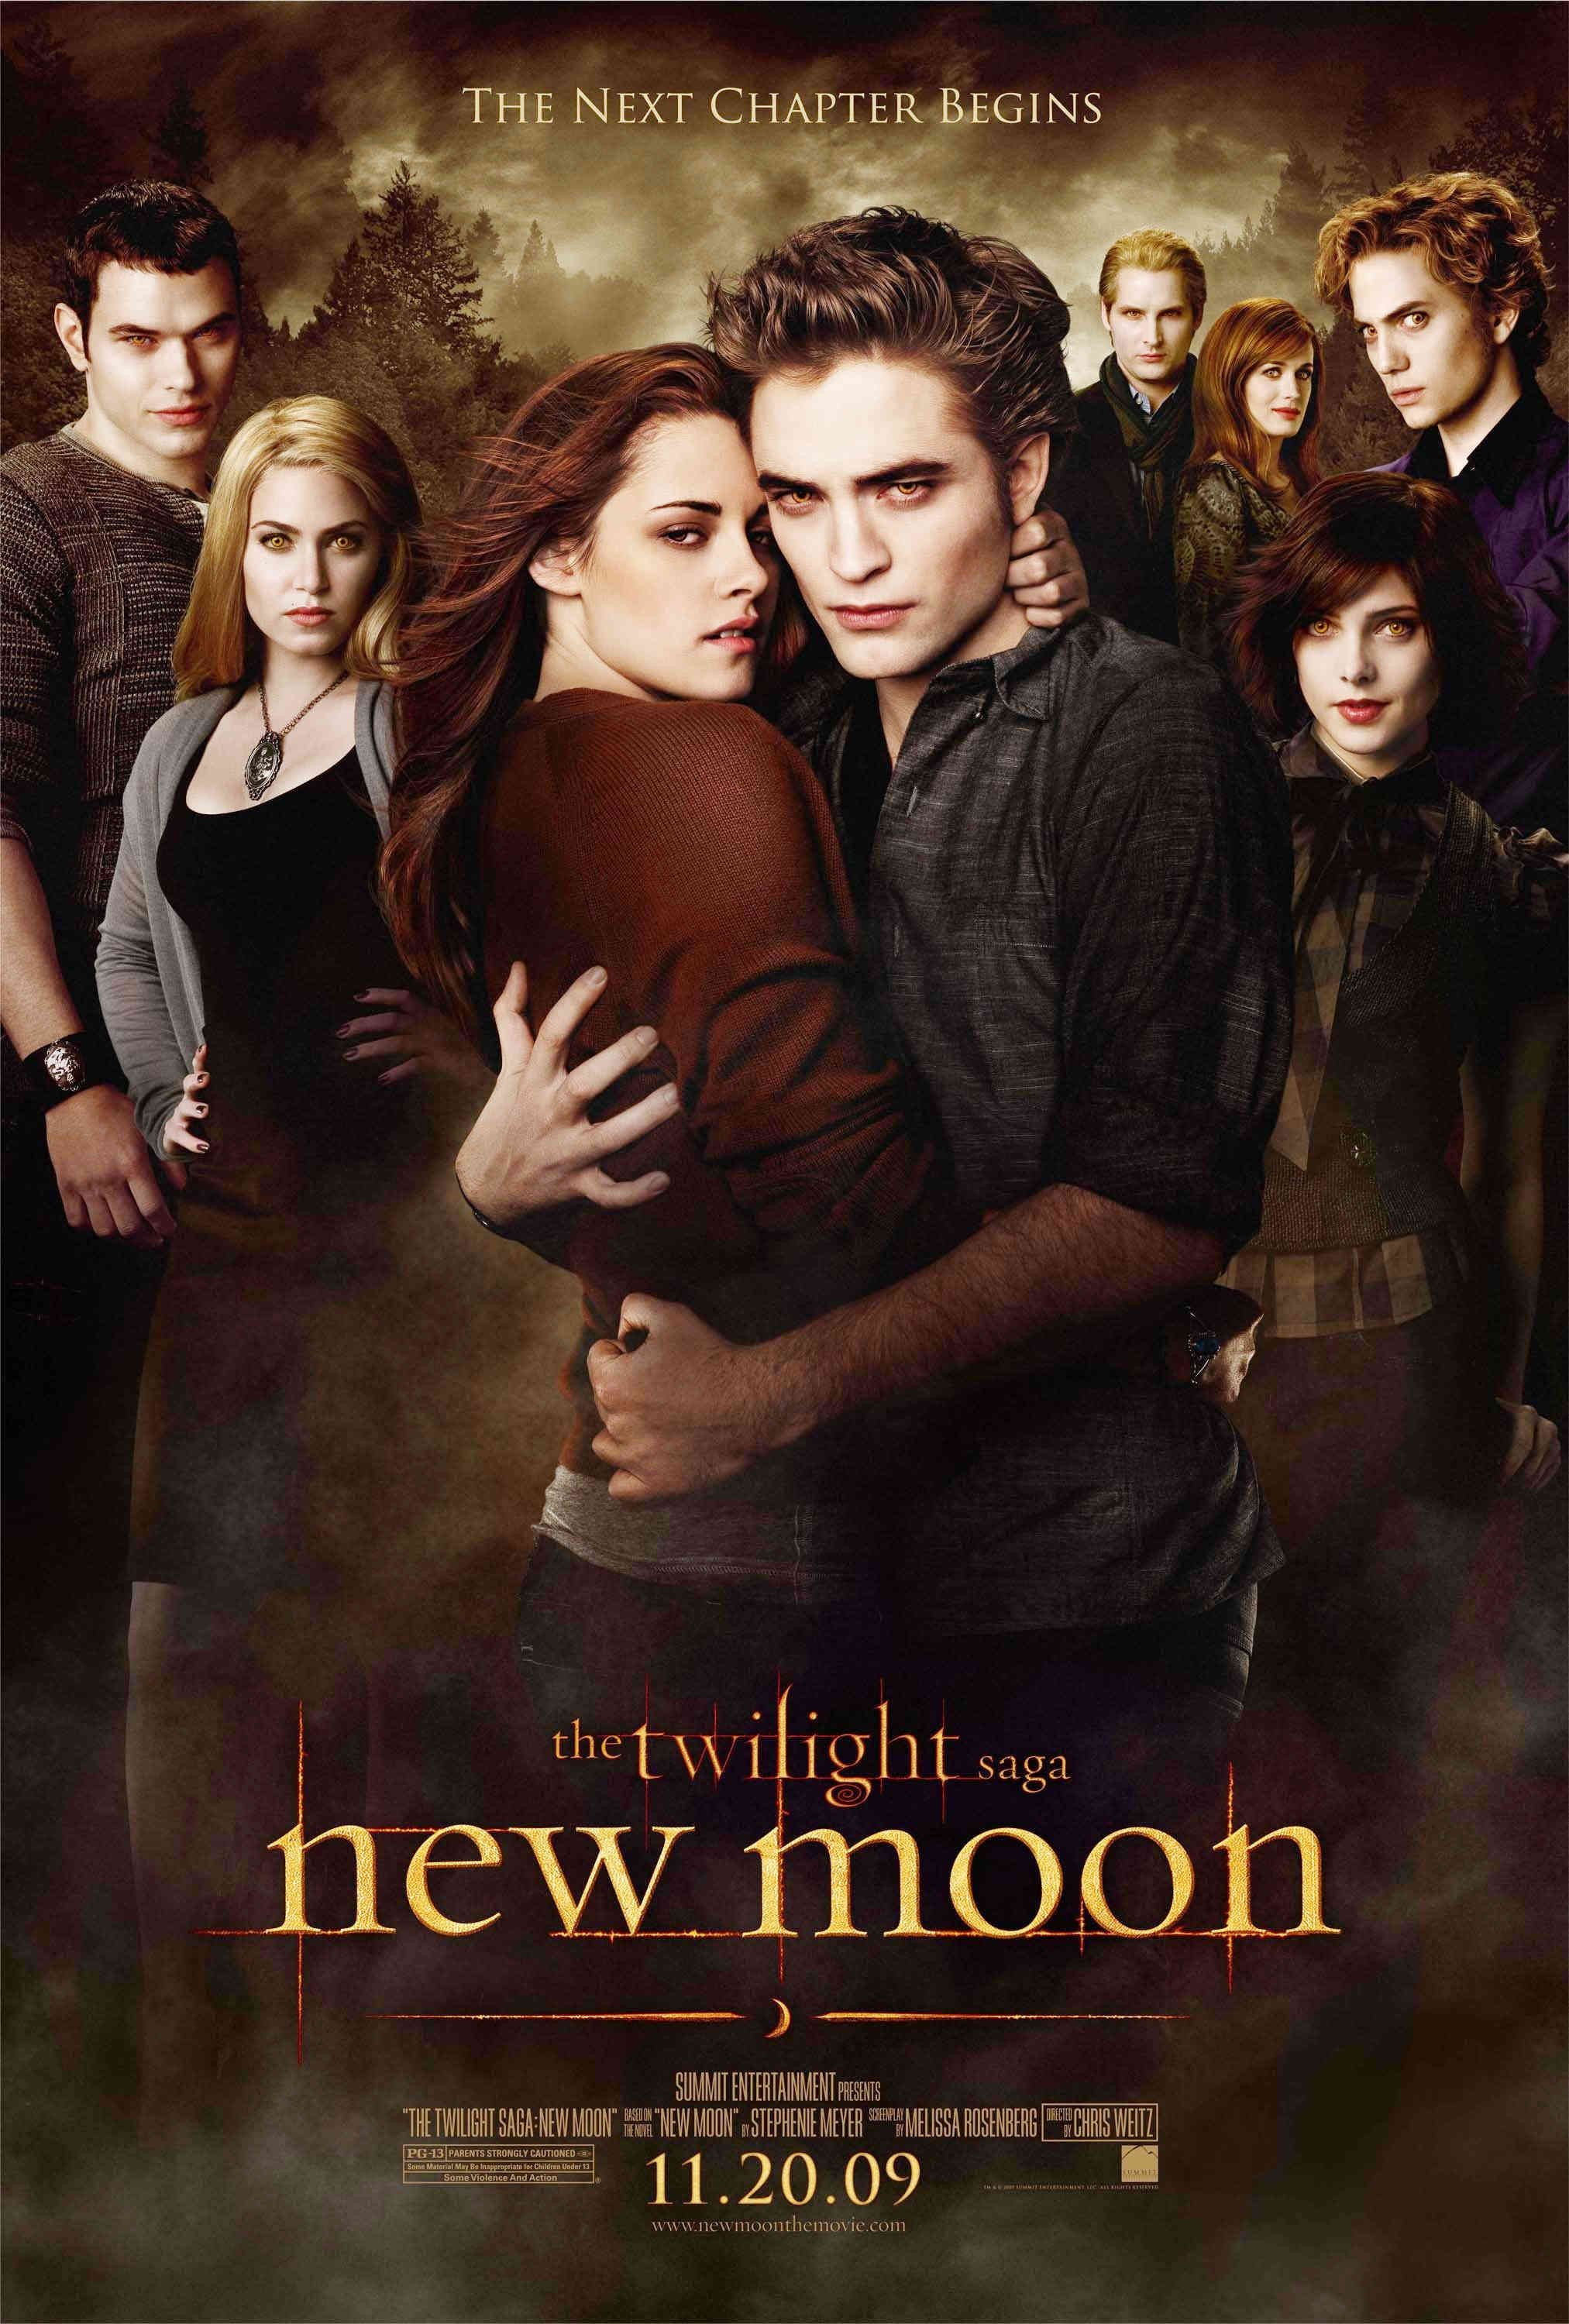 Download twilight saga breaking dawn part 1 with high hd quality.